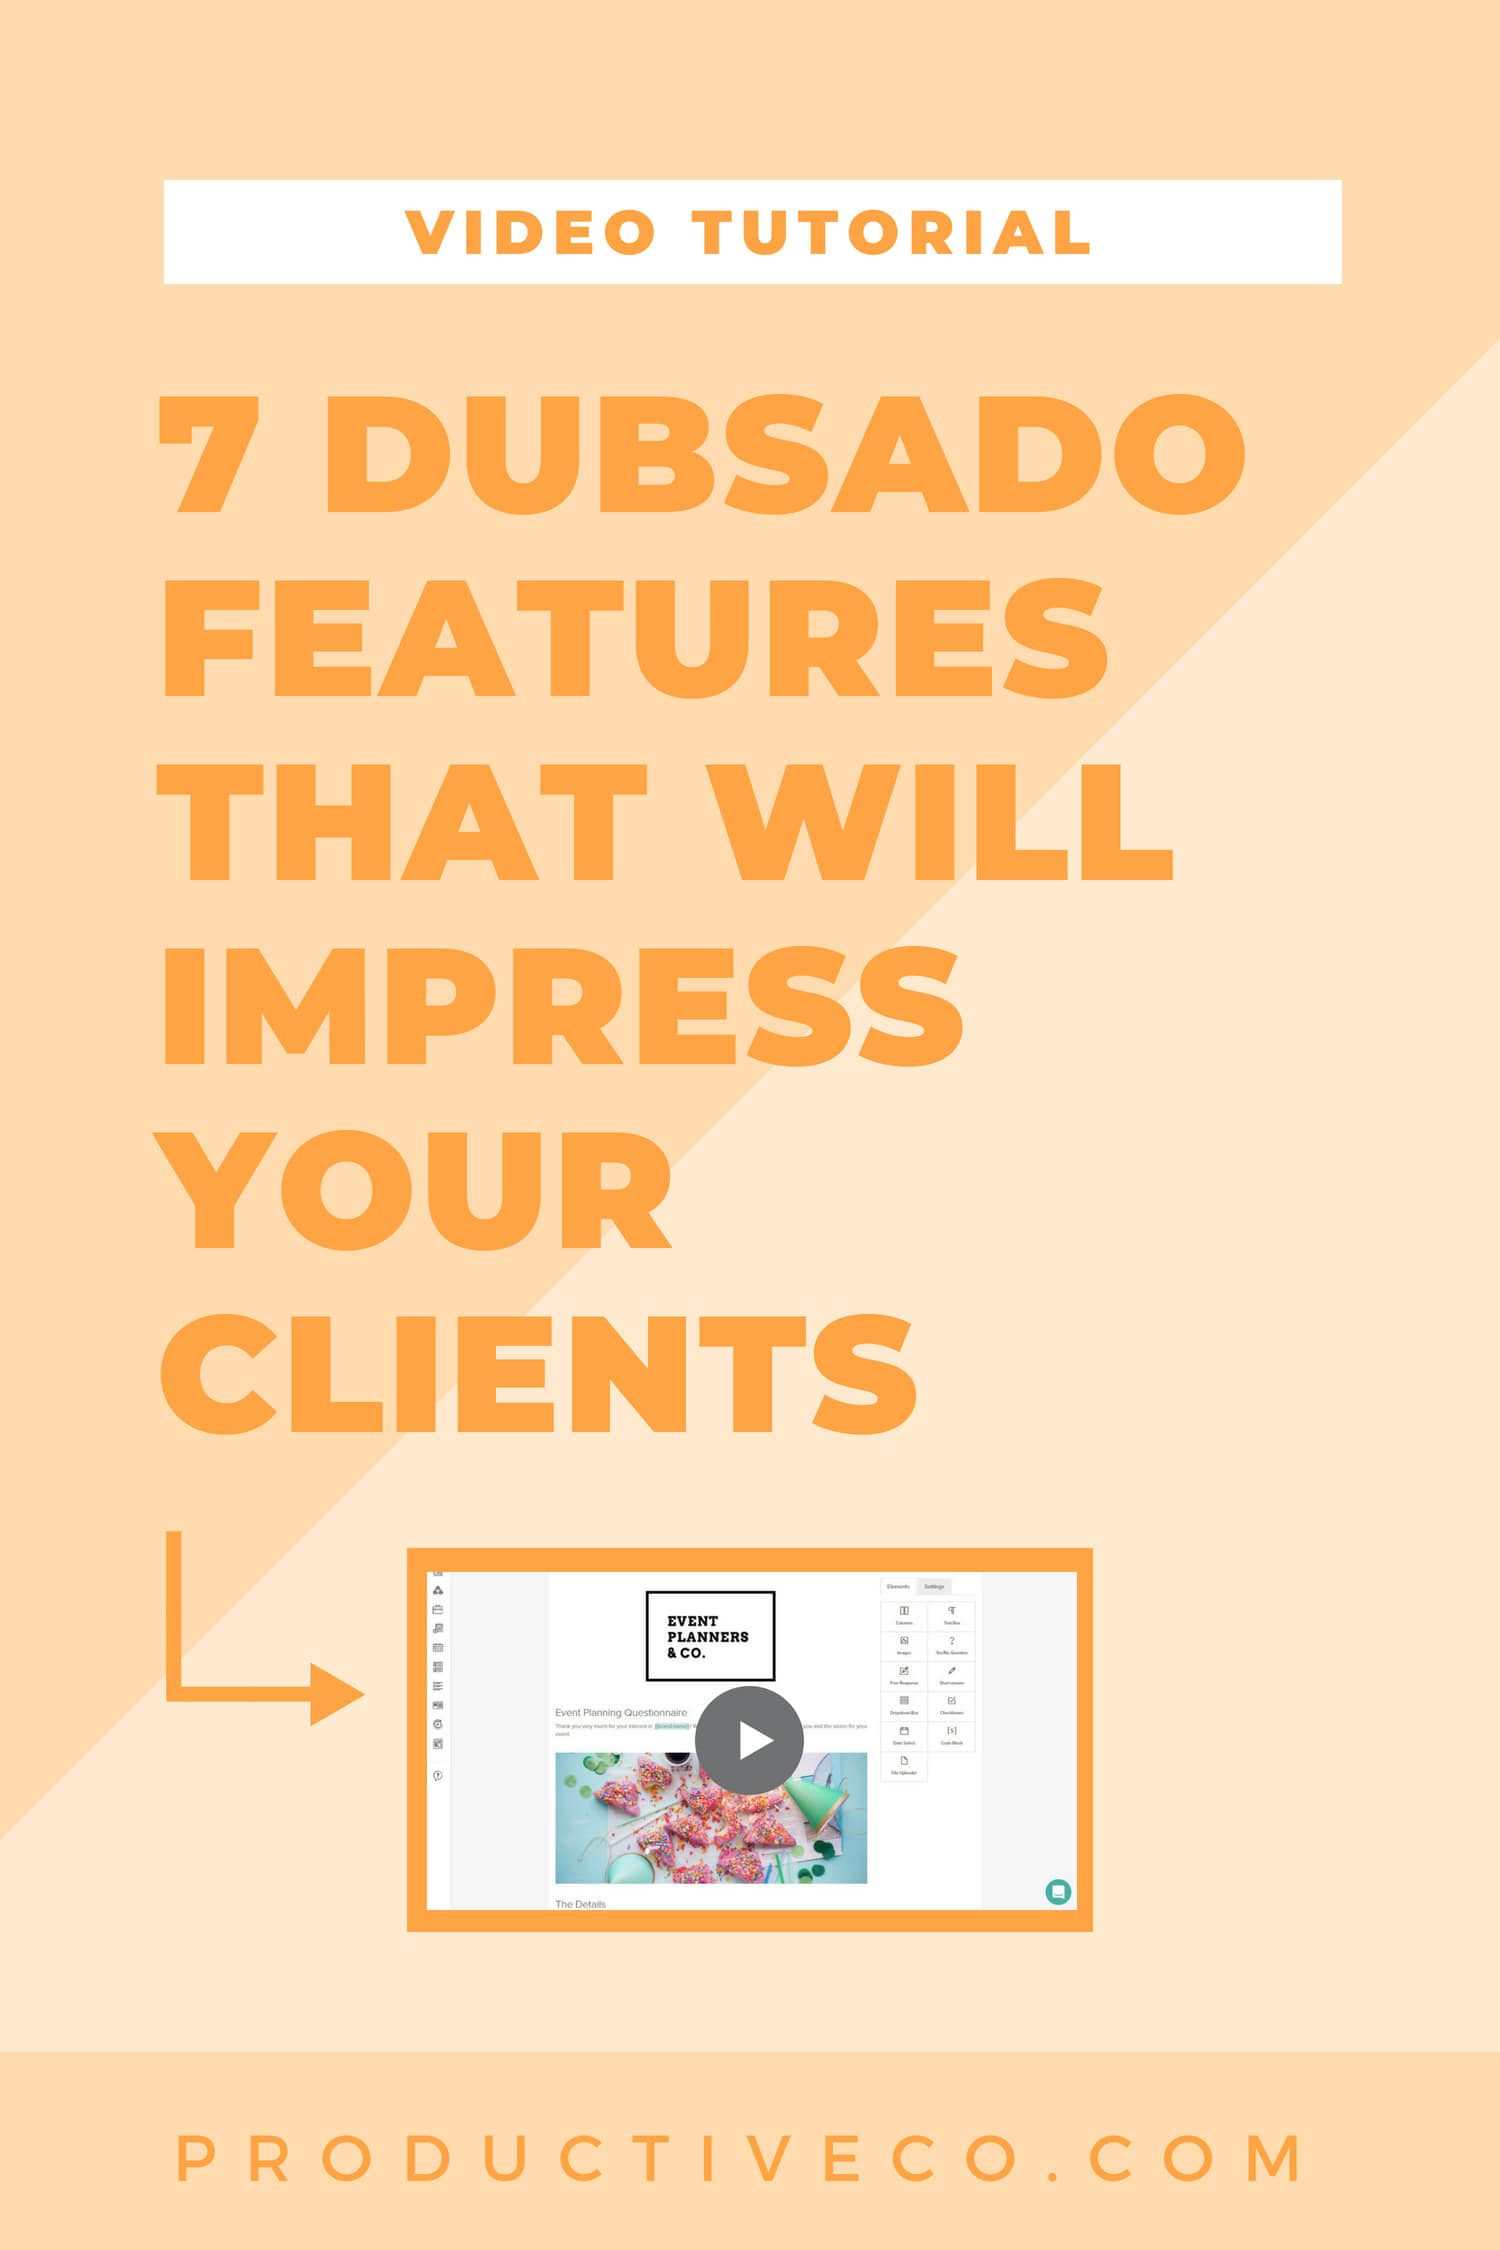 Impress your clients with these 7 Dubsado features: client portals, banners, contract signing, automatic payments, and more.